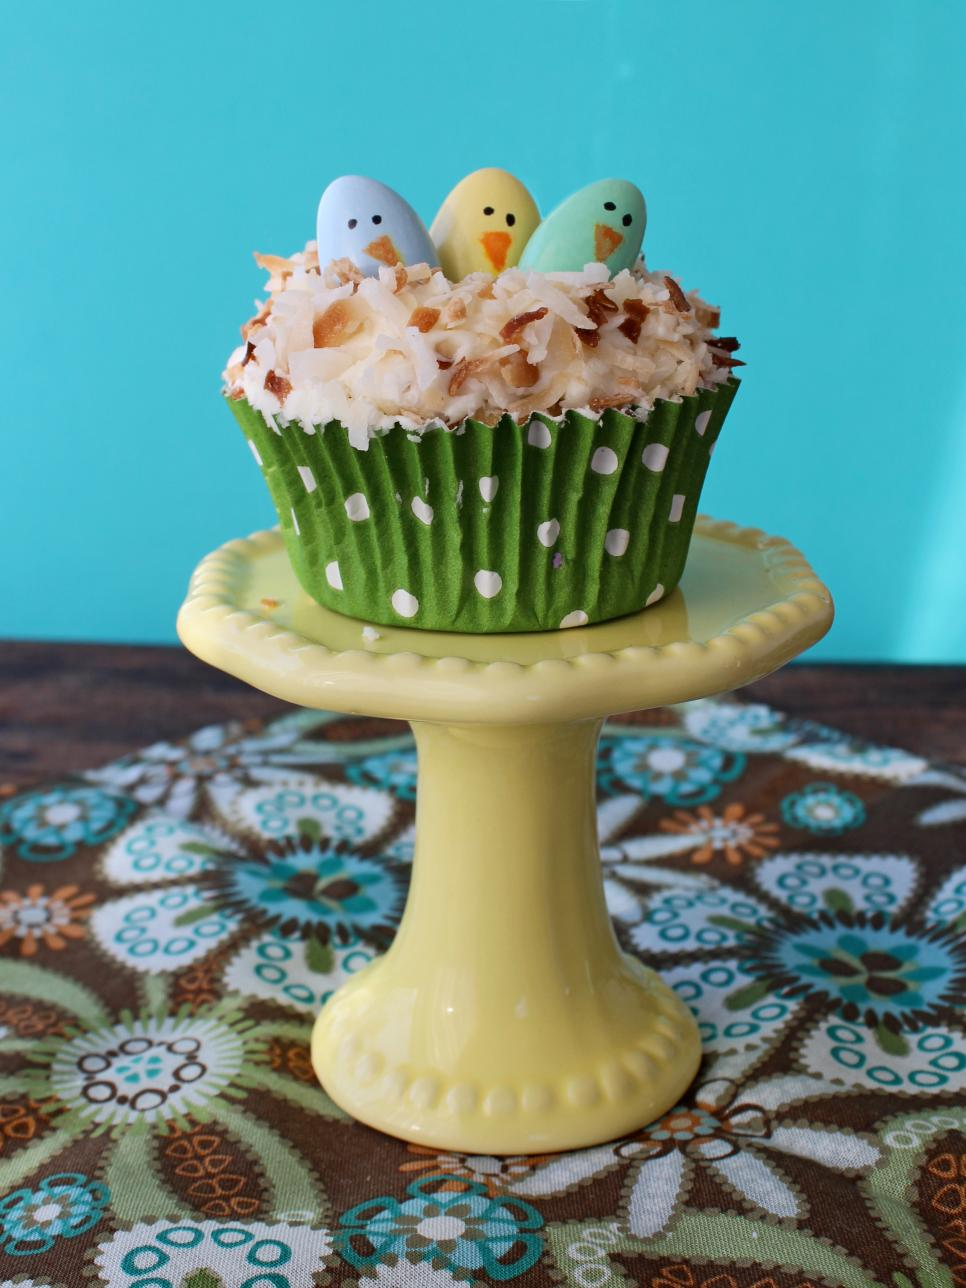 14 easy easter cupcake decorating ideas hgtv for Cute cupcake decorating ideas for easter